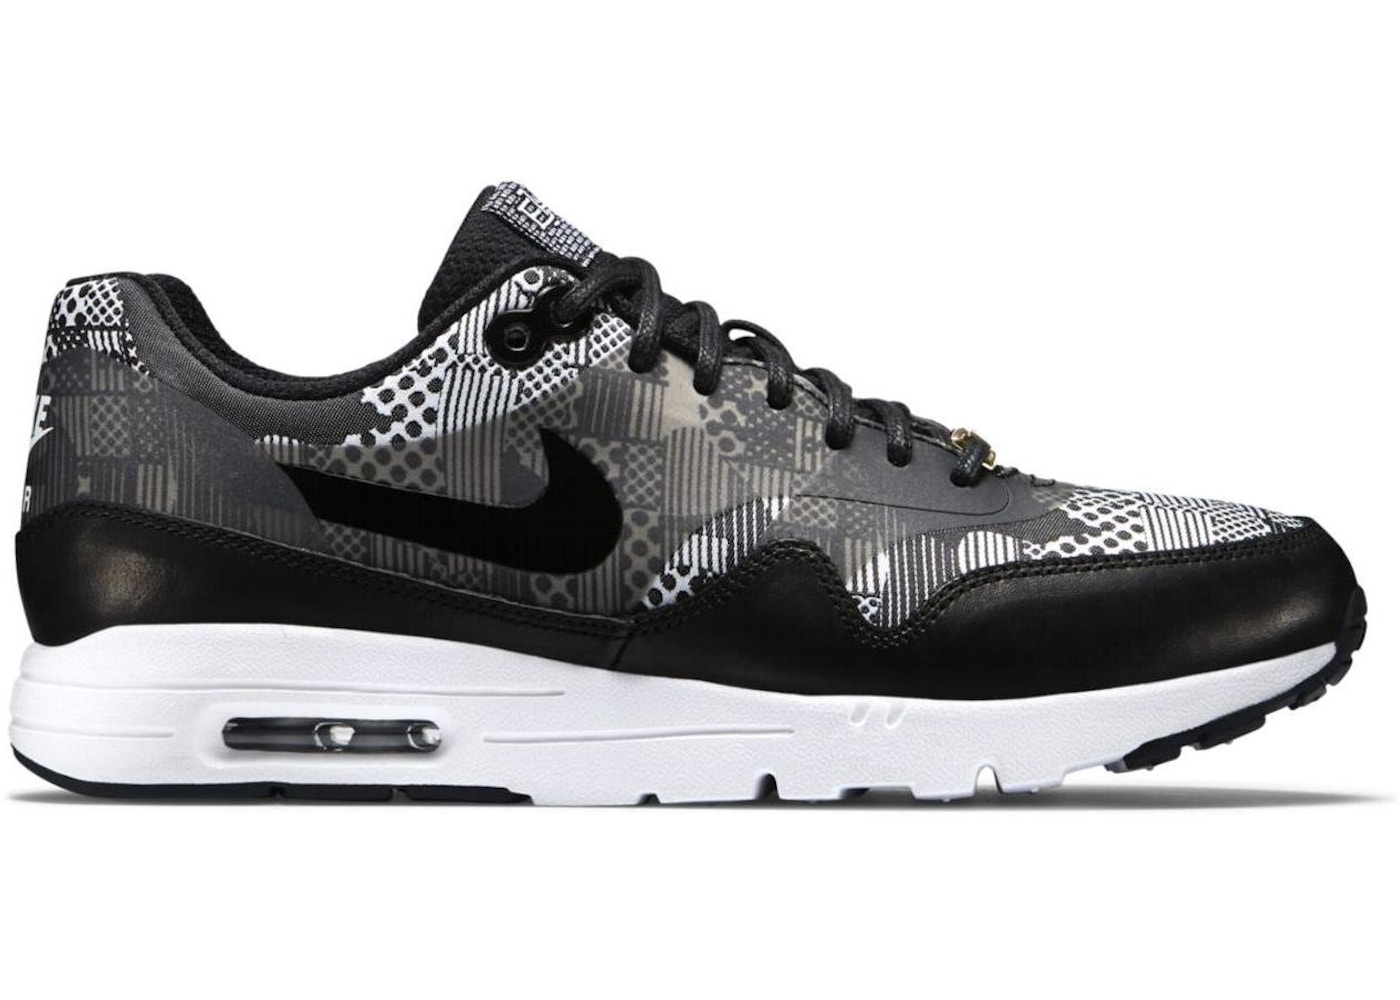 finest selection 8f249 30468 Air Max 1 BHM 2015 (GS) - 718451-001